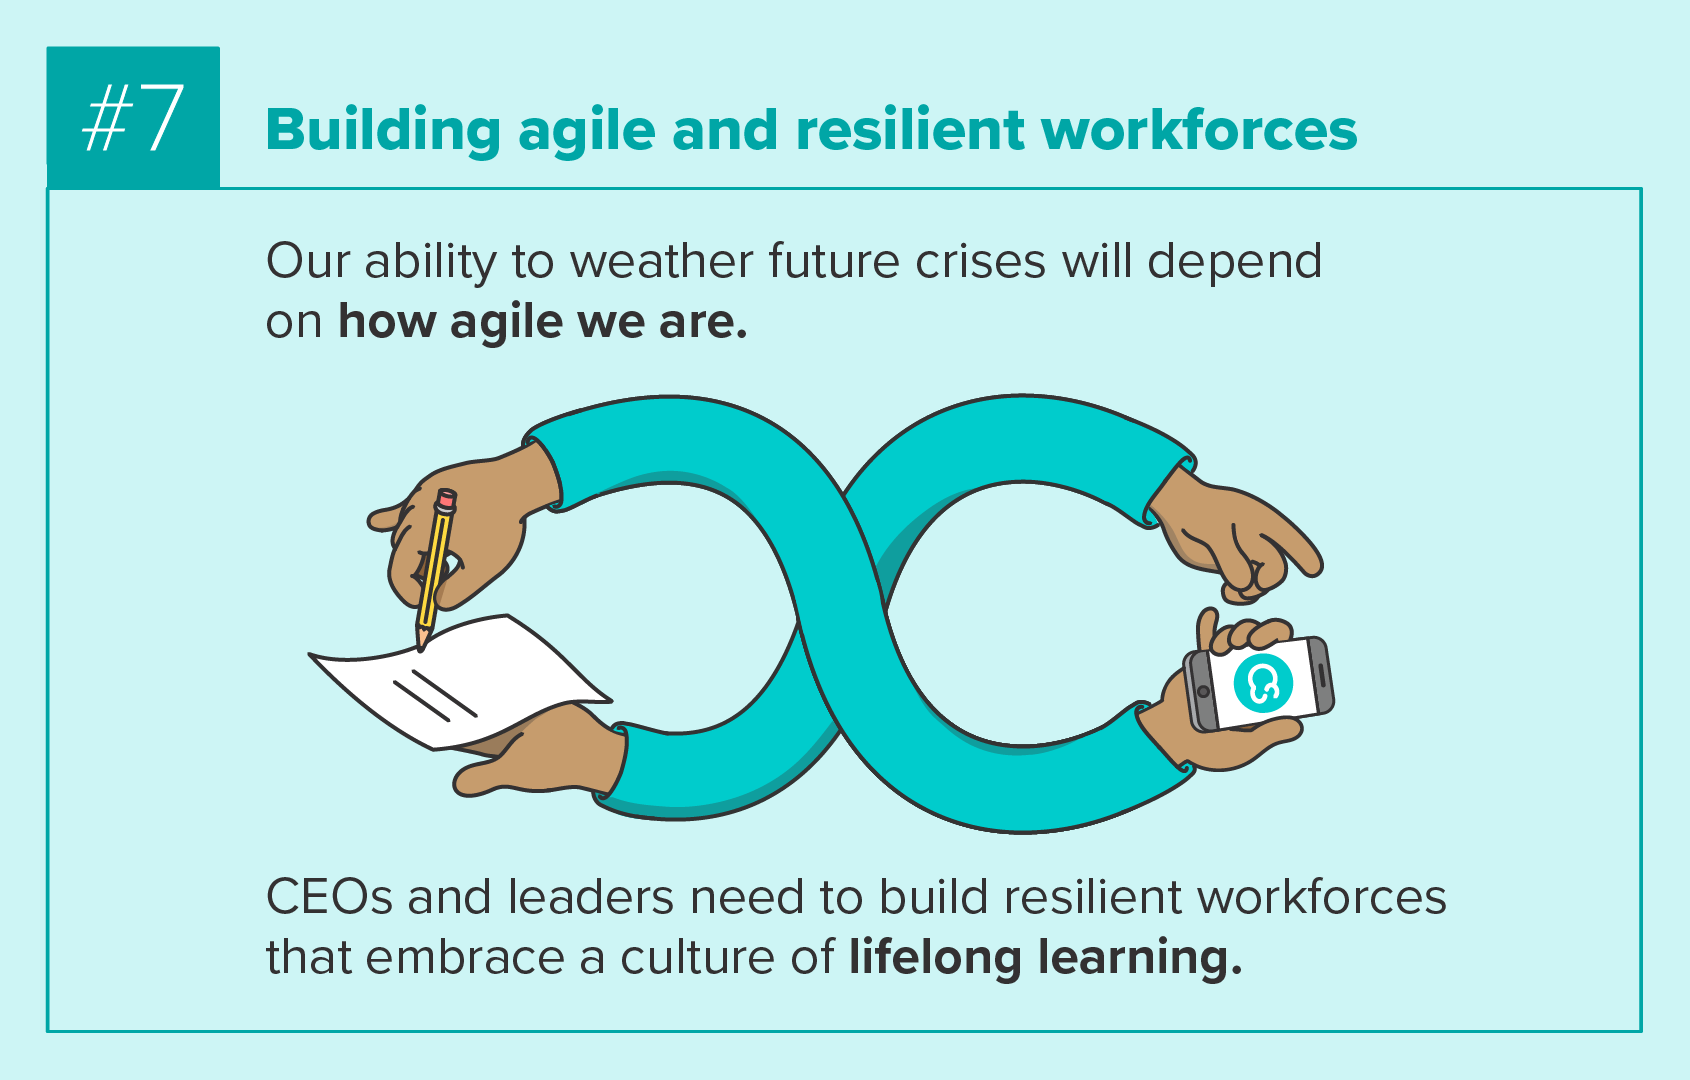 Building agile and resilient workforces